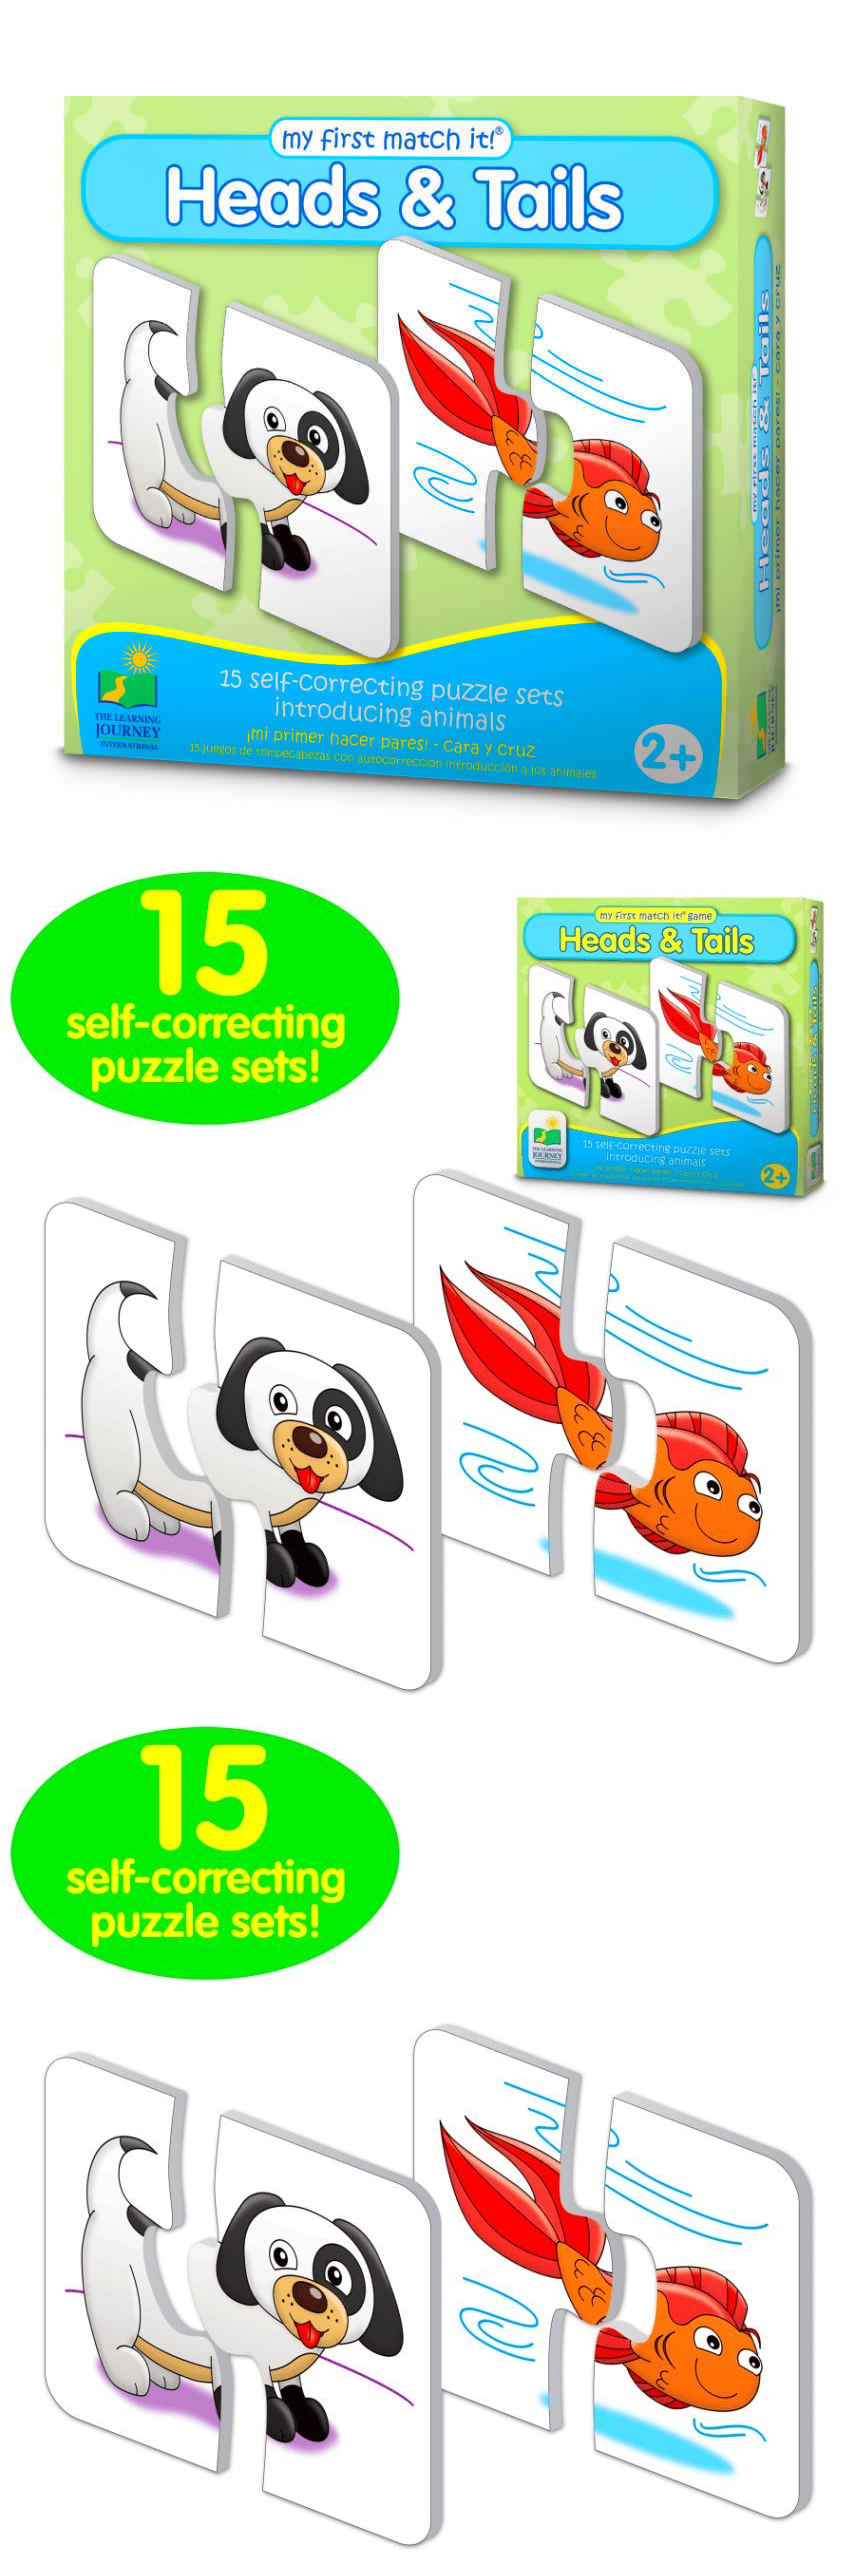 Other Preschool and Pretend Play Educational Toys For 2